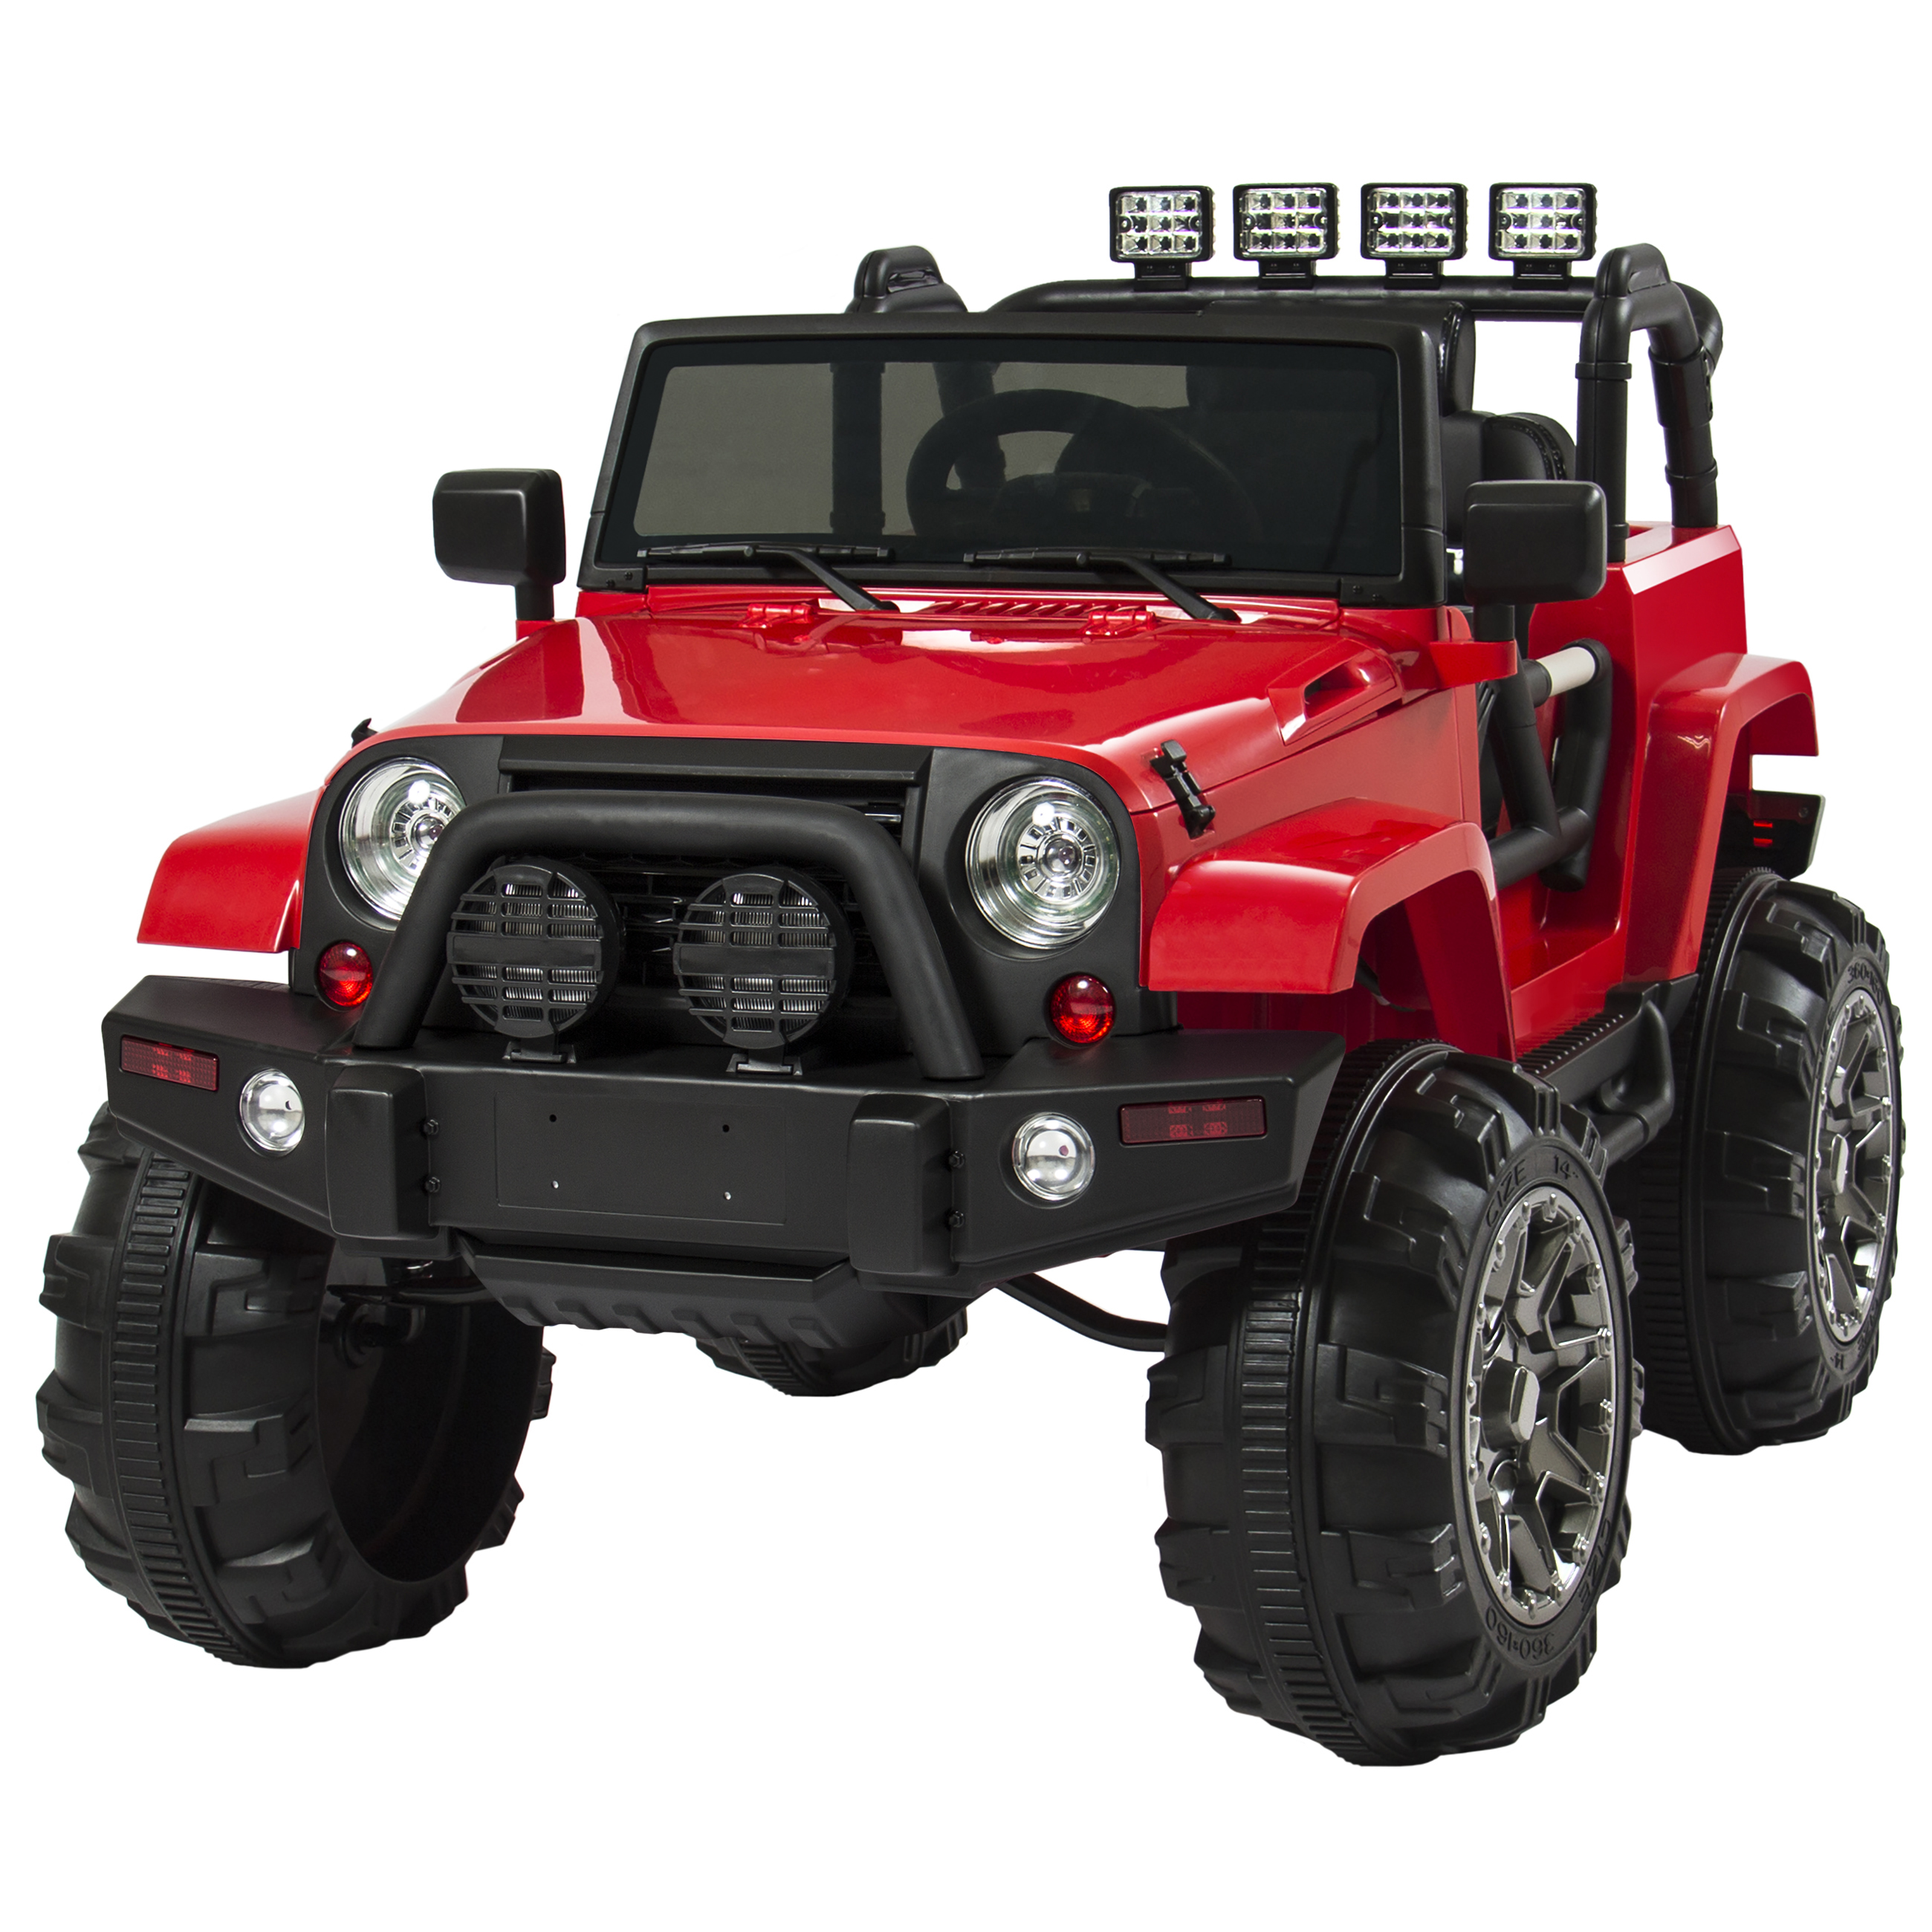 Best Choice Products 12V Ride On Car Truck W  Remote Control, 3 Speeds, Spring Suspension, LED Lights, Red by